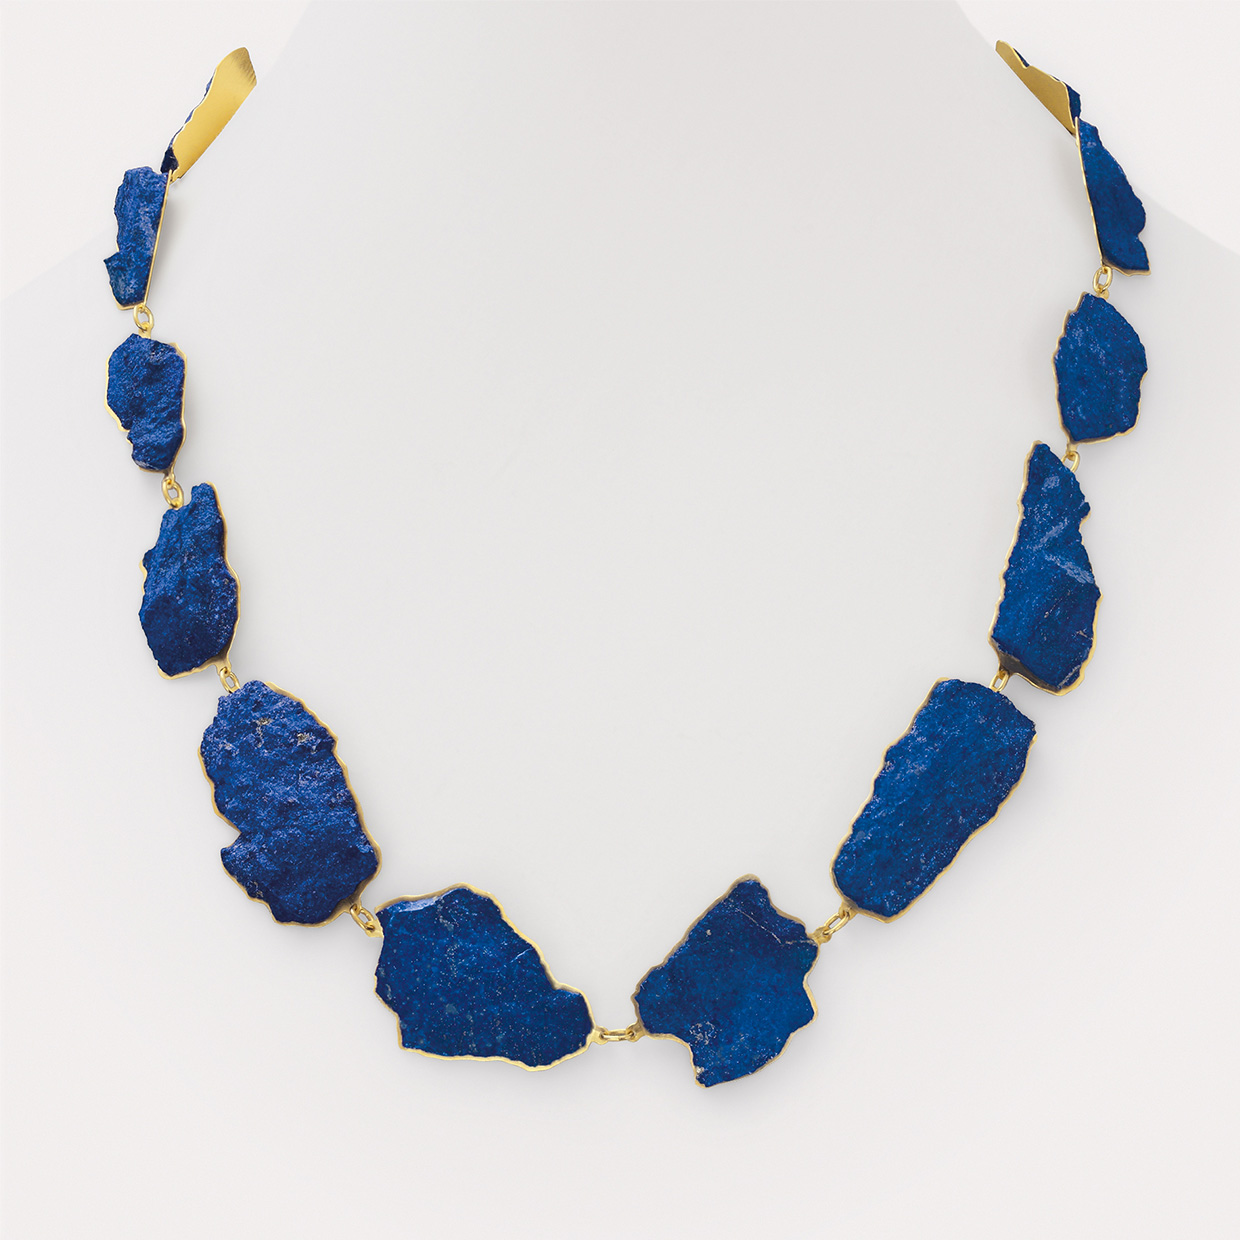 necklace  2015  gold  750  lapislazuli  630x30  mm